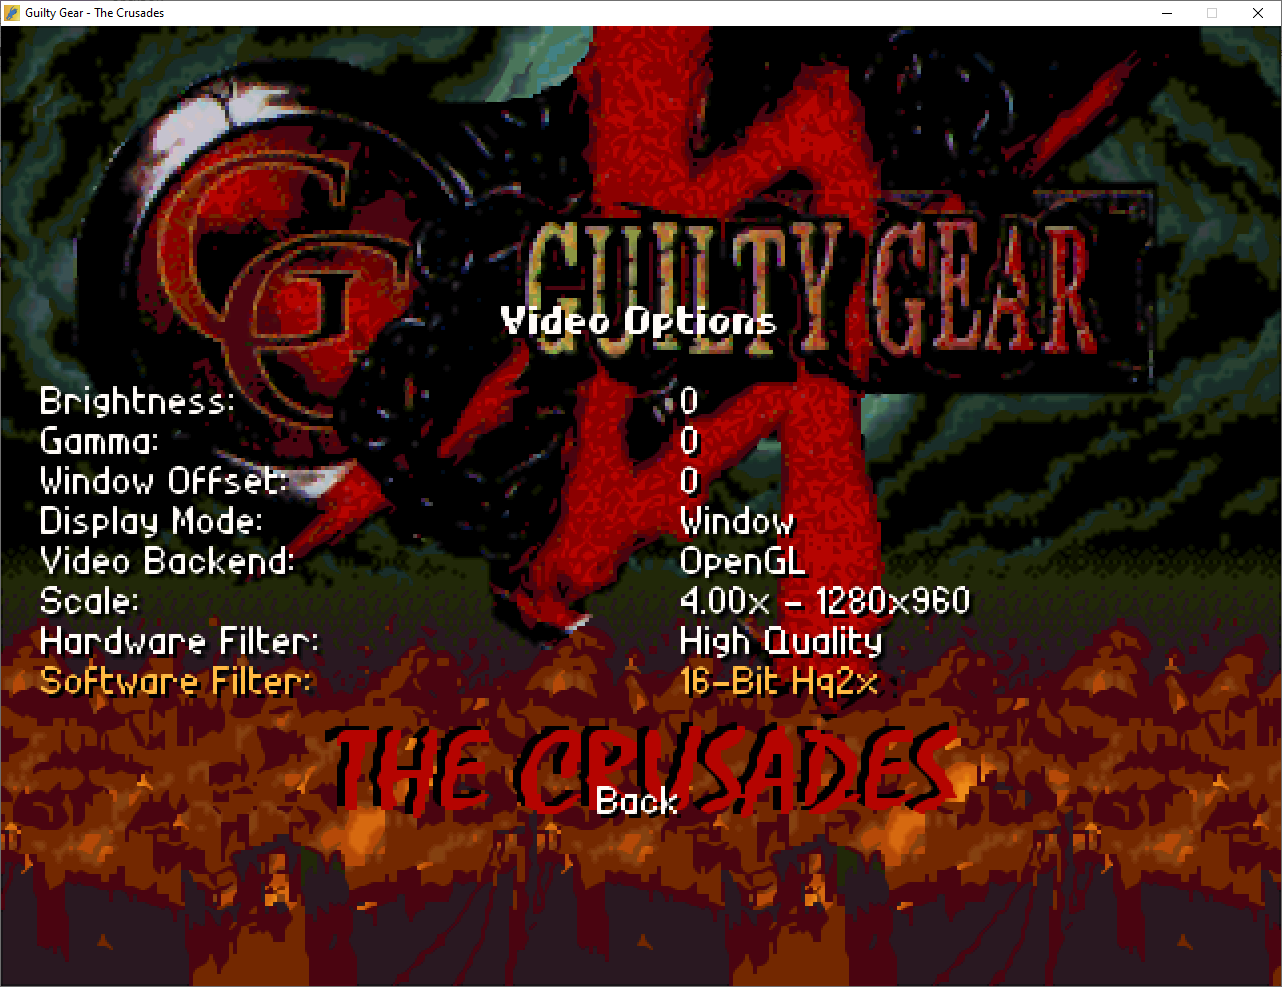 Guilty Gear - The Crusades